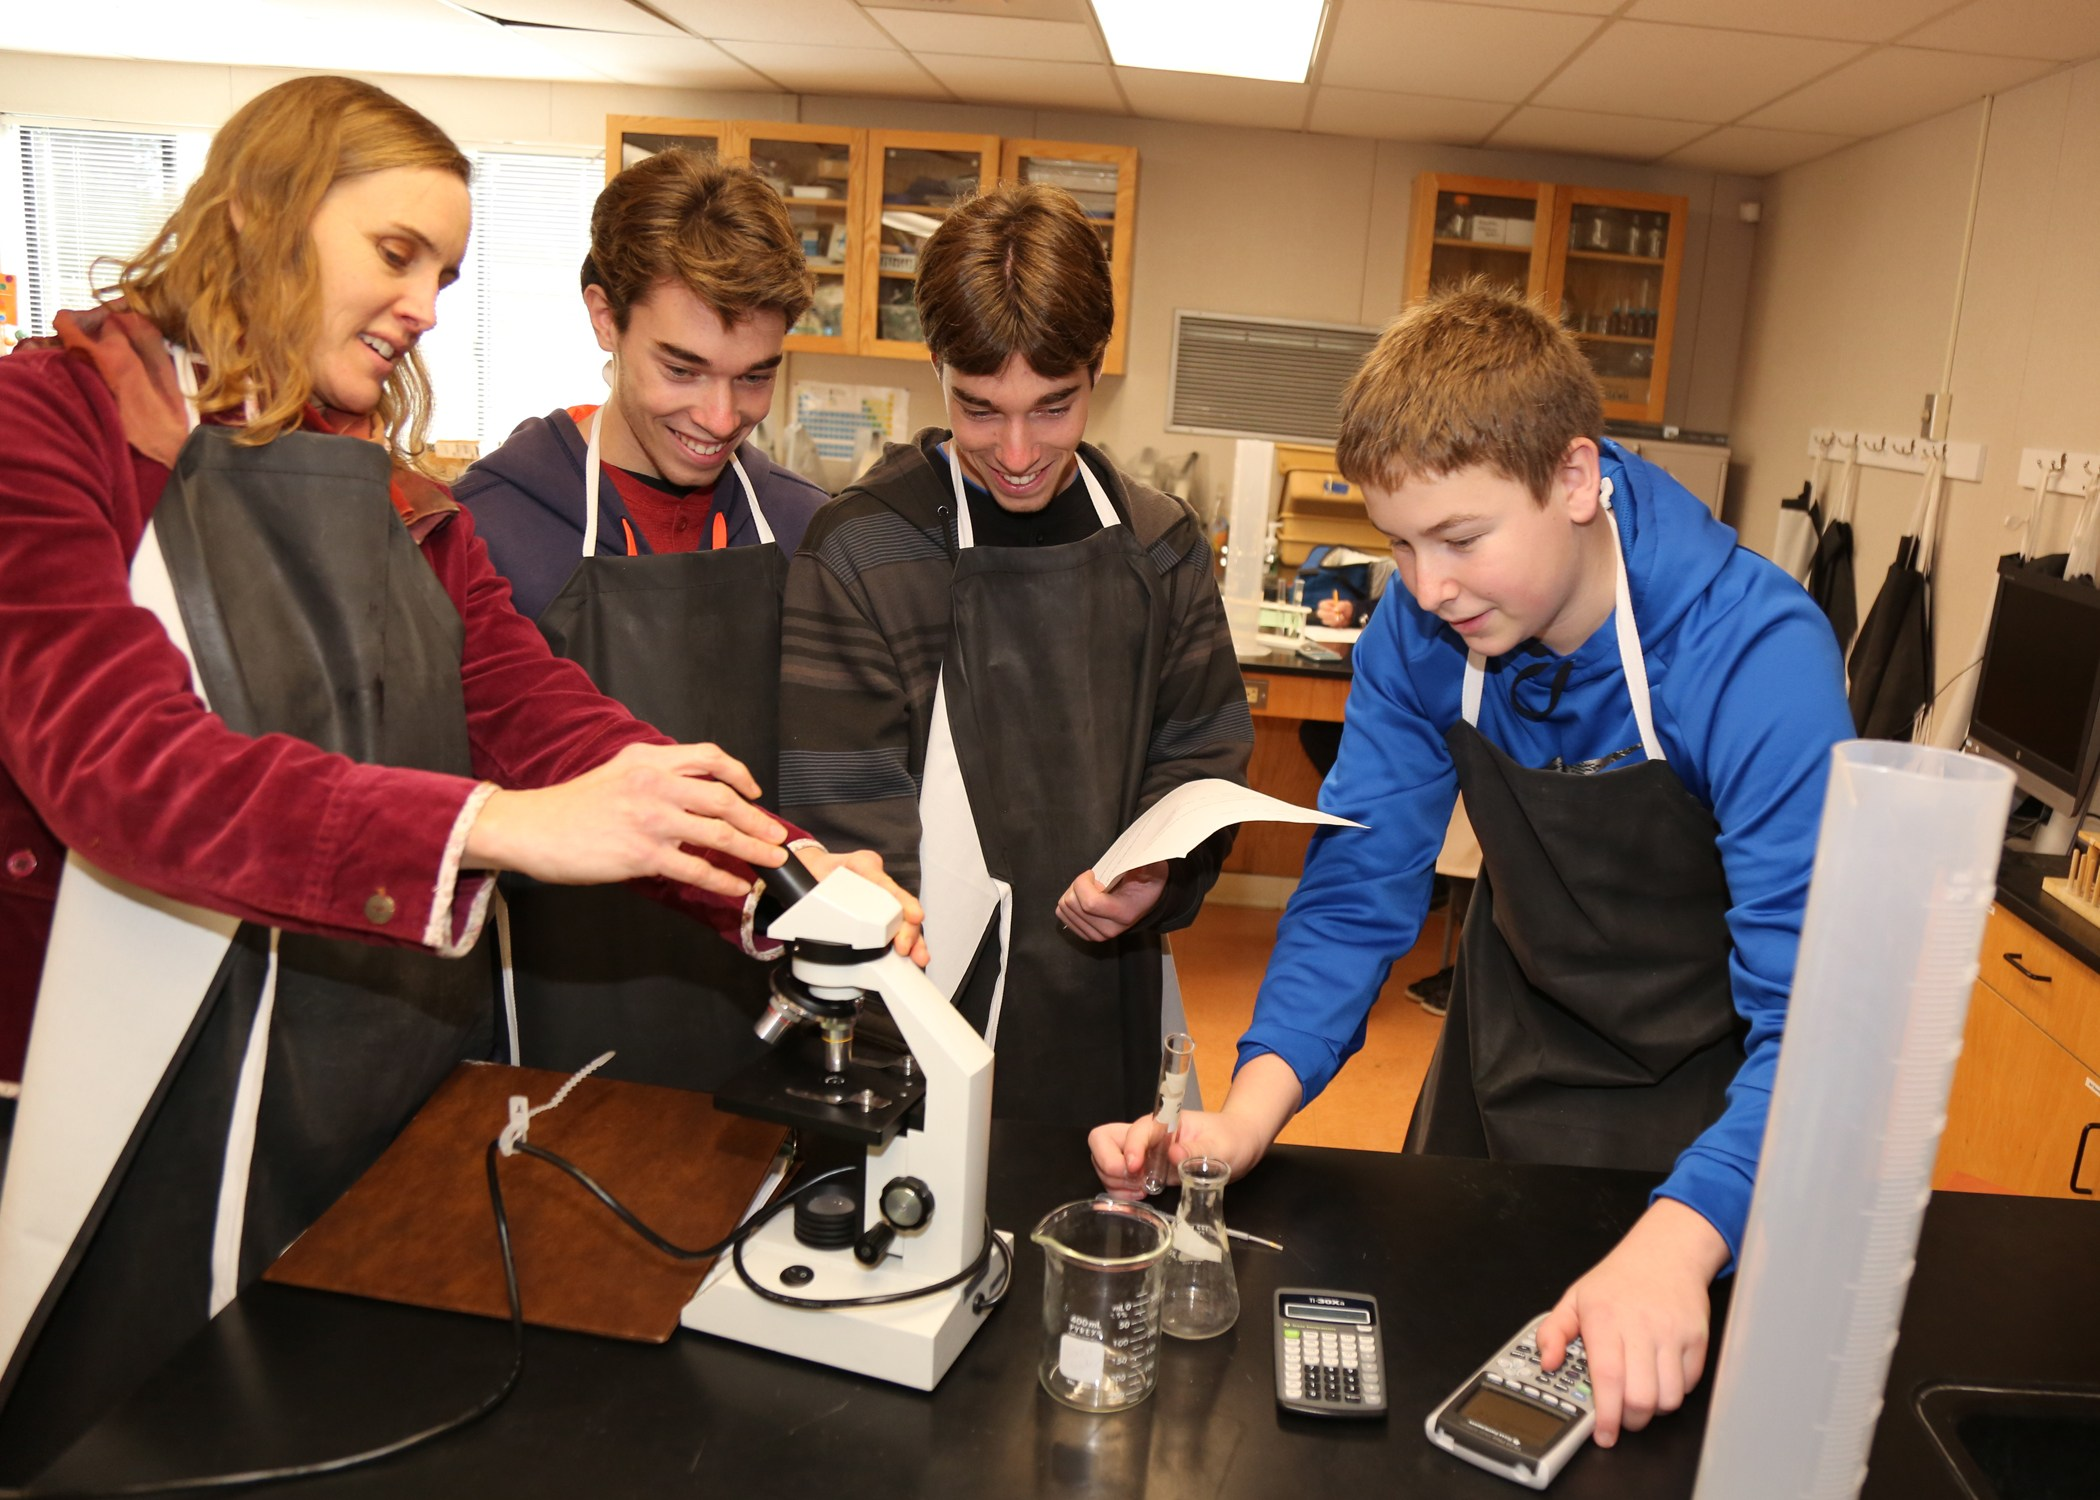 Chemistry teacher with 4 students at microscope